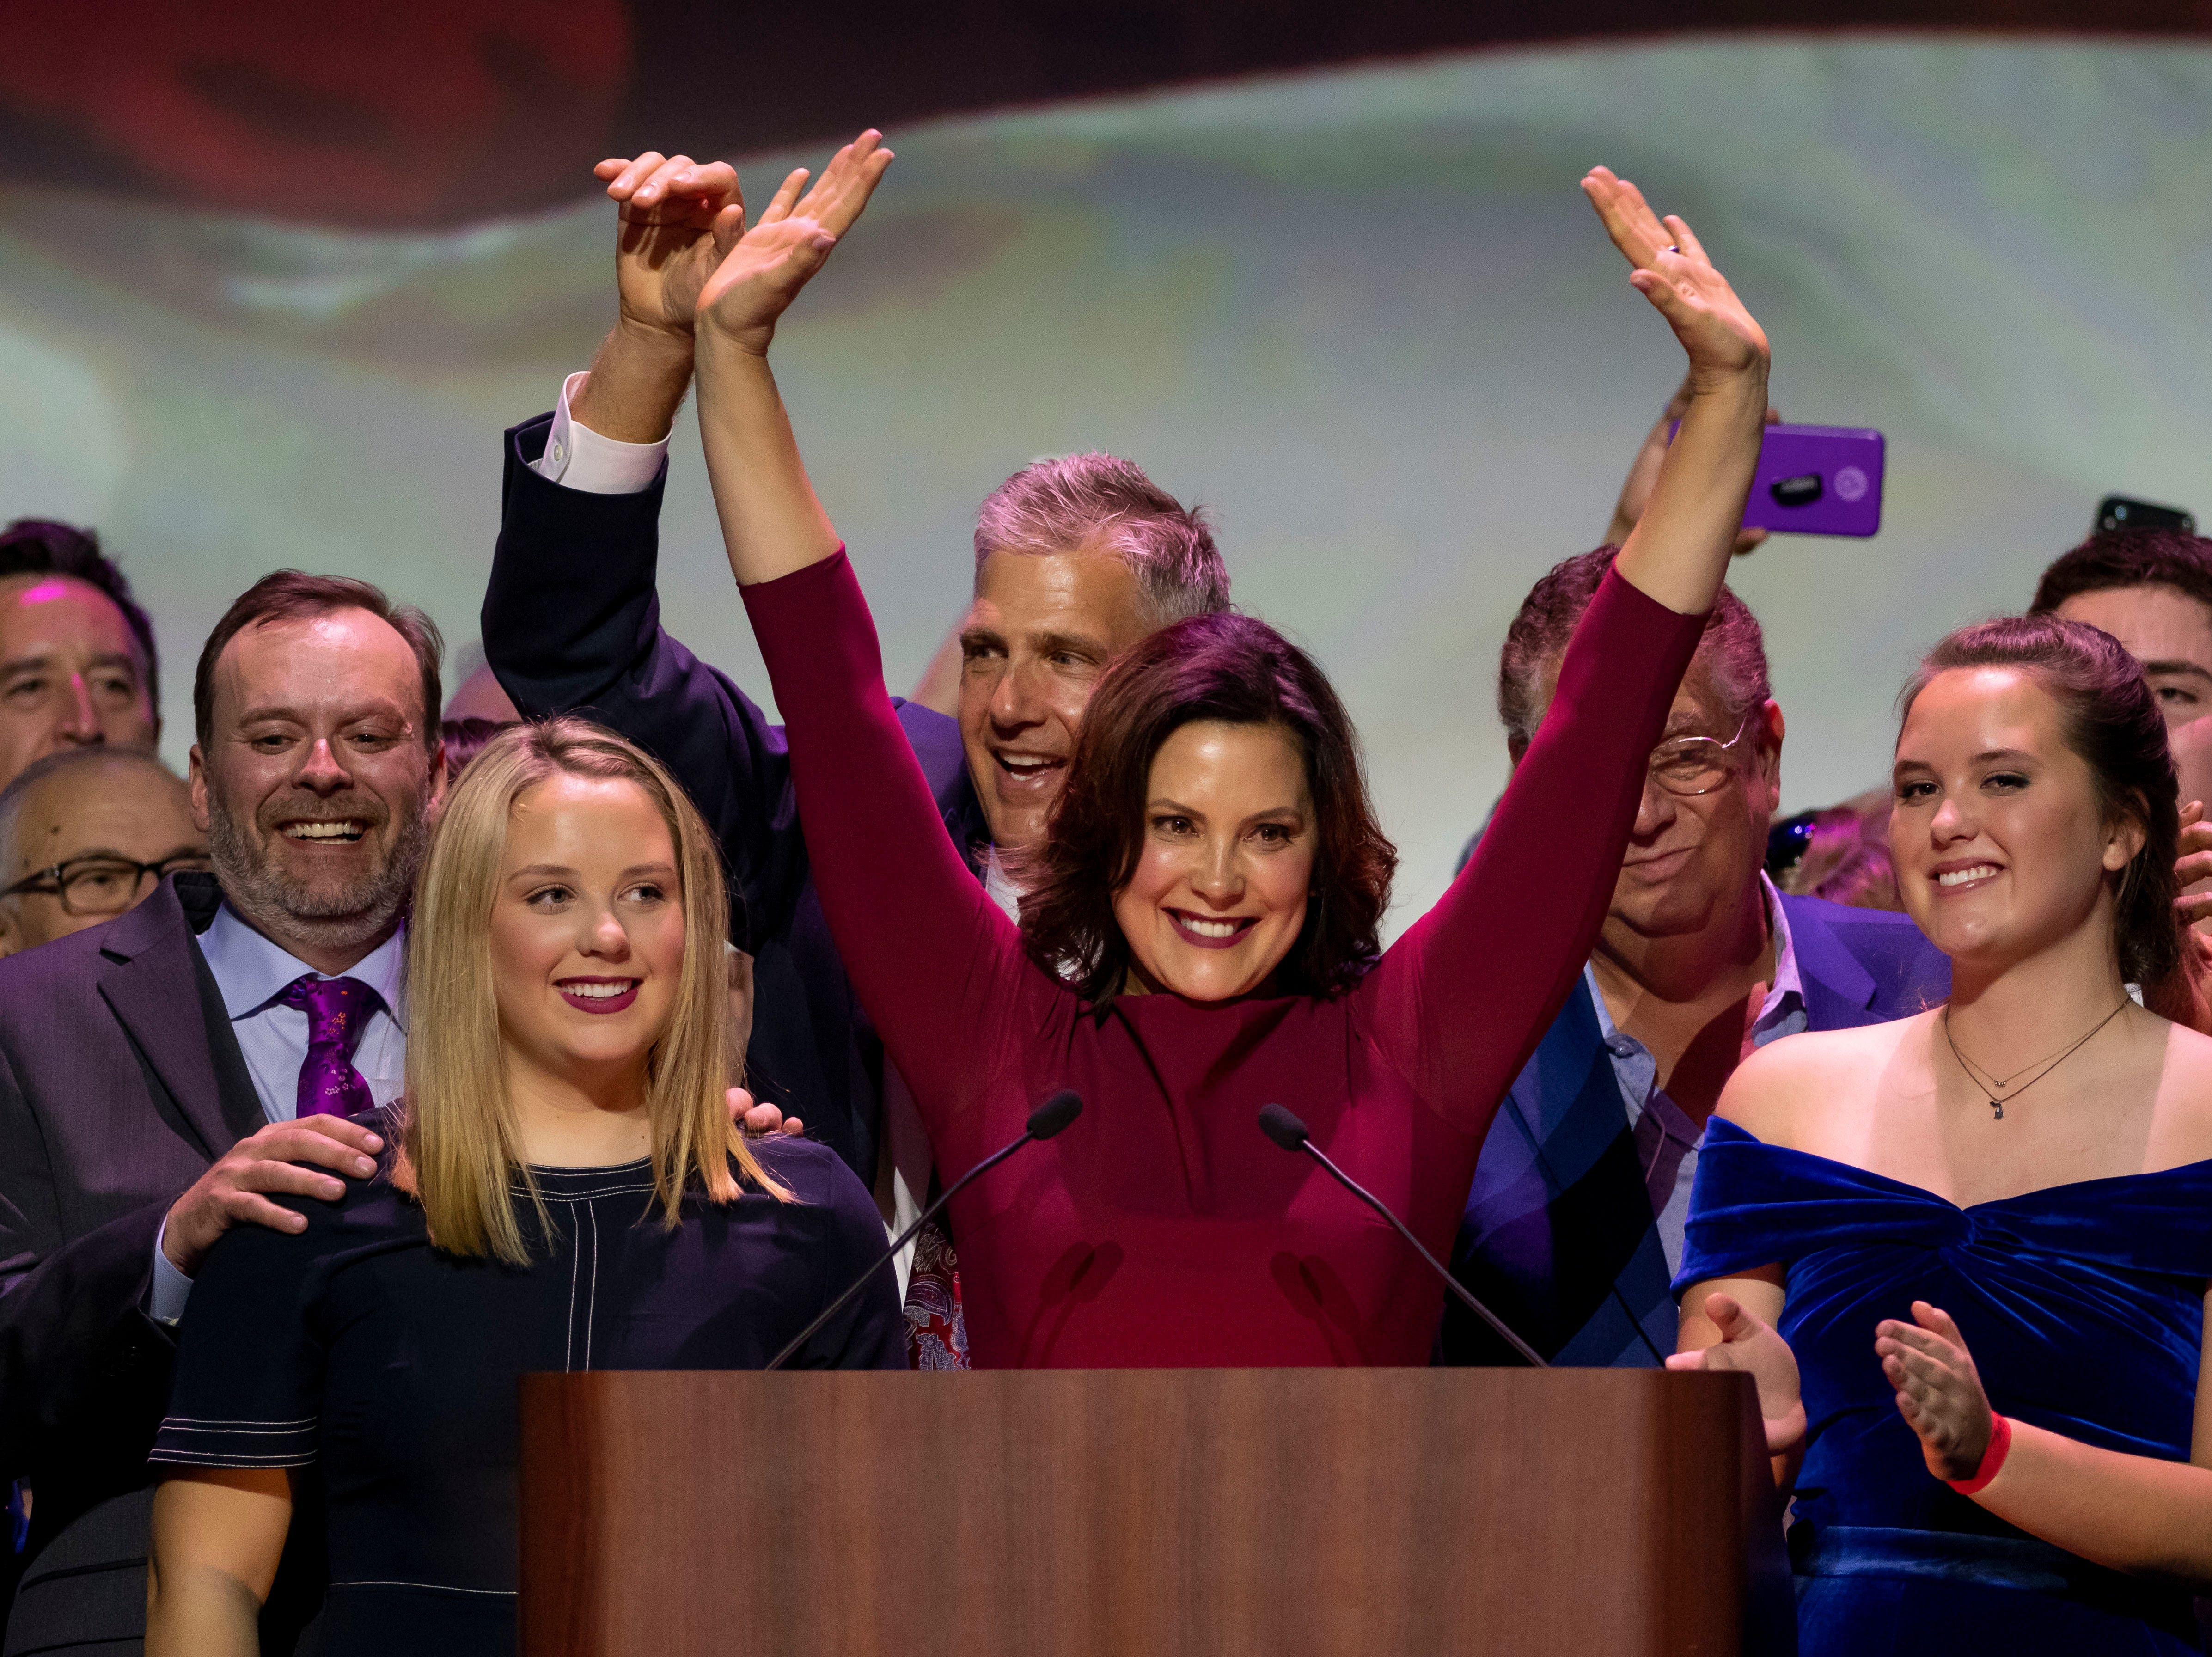 Gretchen Whitmer gives her acceptance speech after being elected the next governor of Michigan, in Detroit, Tuesday, Nov. 6, 2018 at the Sound Board Theater at MotorCity Casino.